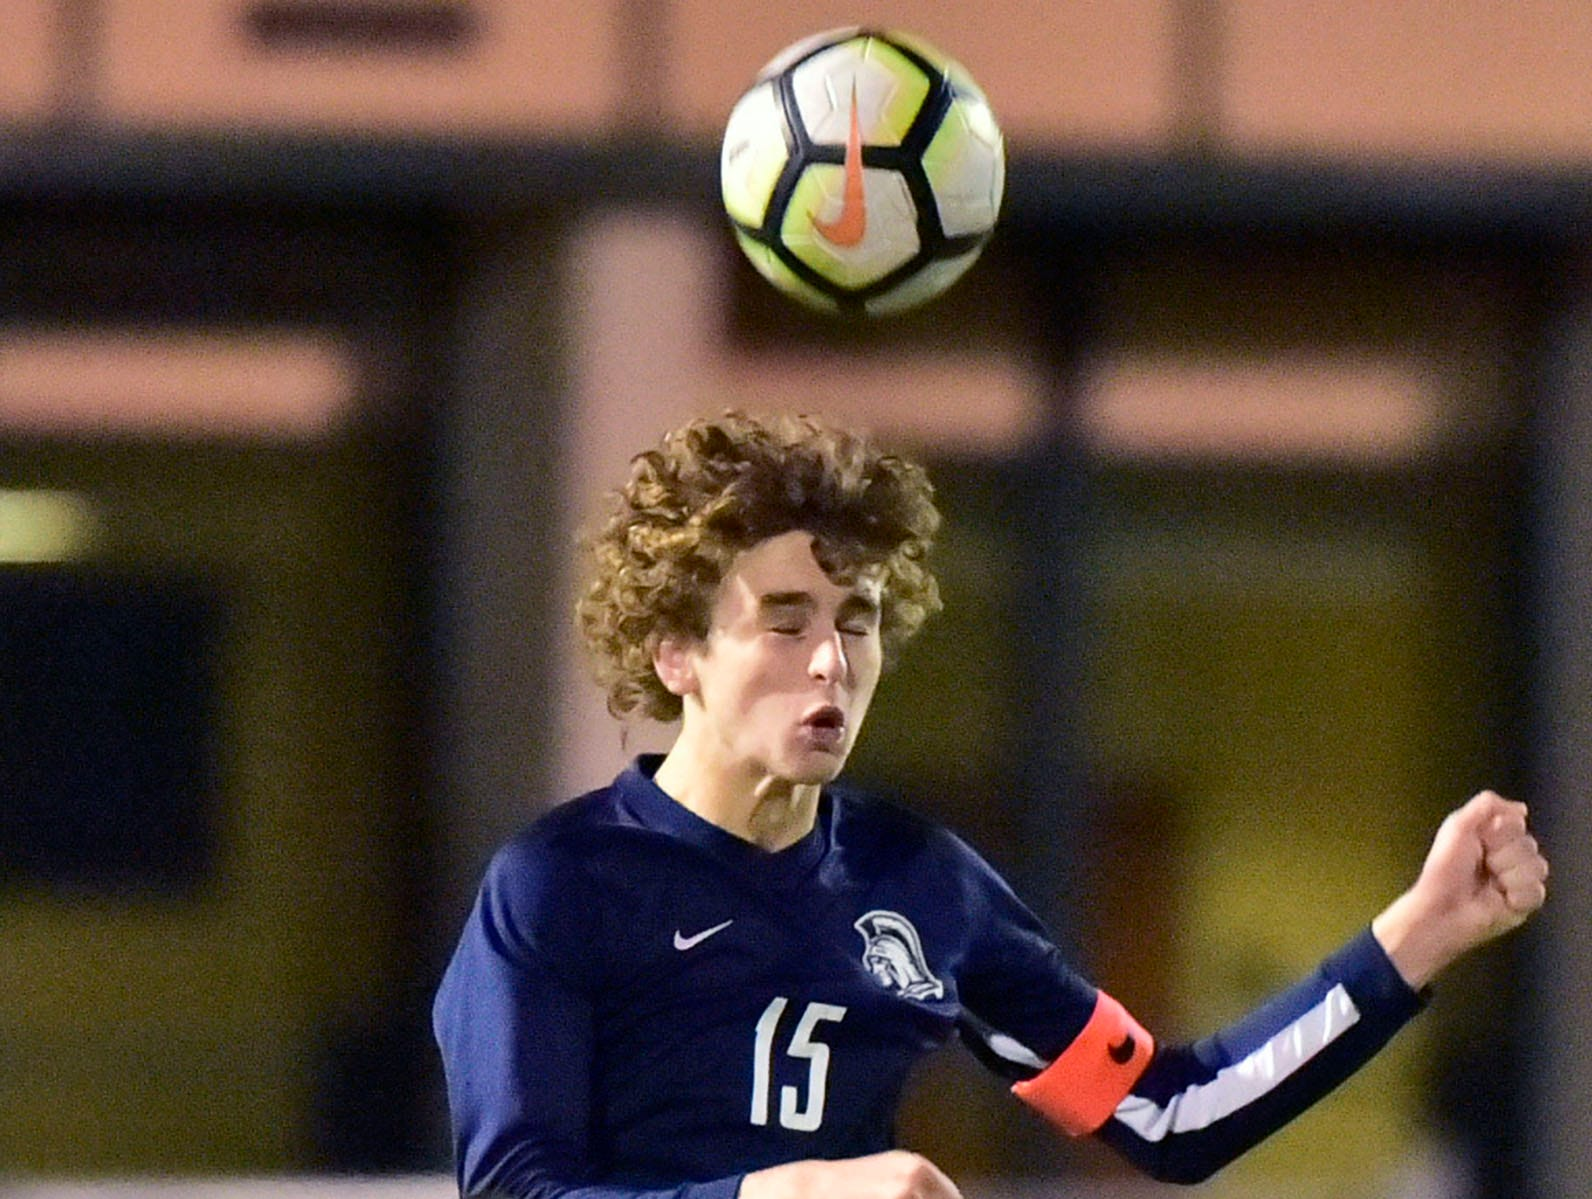 Aaron Maynard of Chambersburg heads the ball over Dallastown's Keegan Lambertson. Chambersburg lost a first round D3 soccer match to Dallastown 2-1 on Tuesday, Oct. 23, 2018.